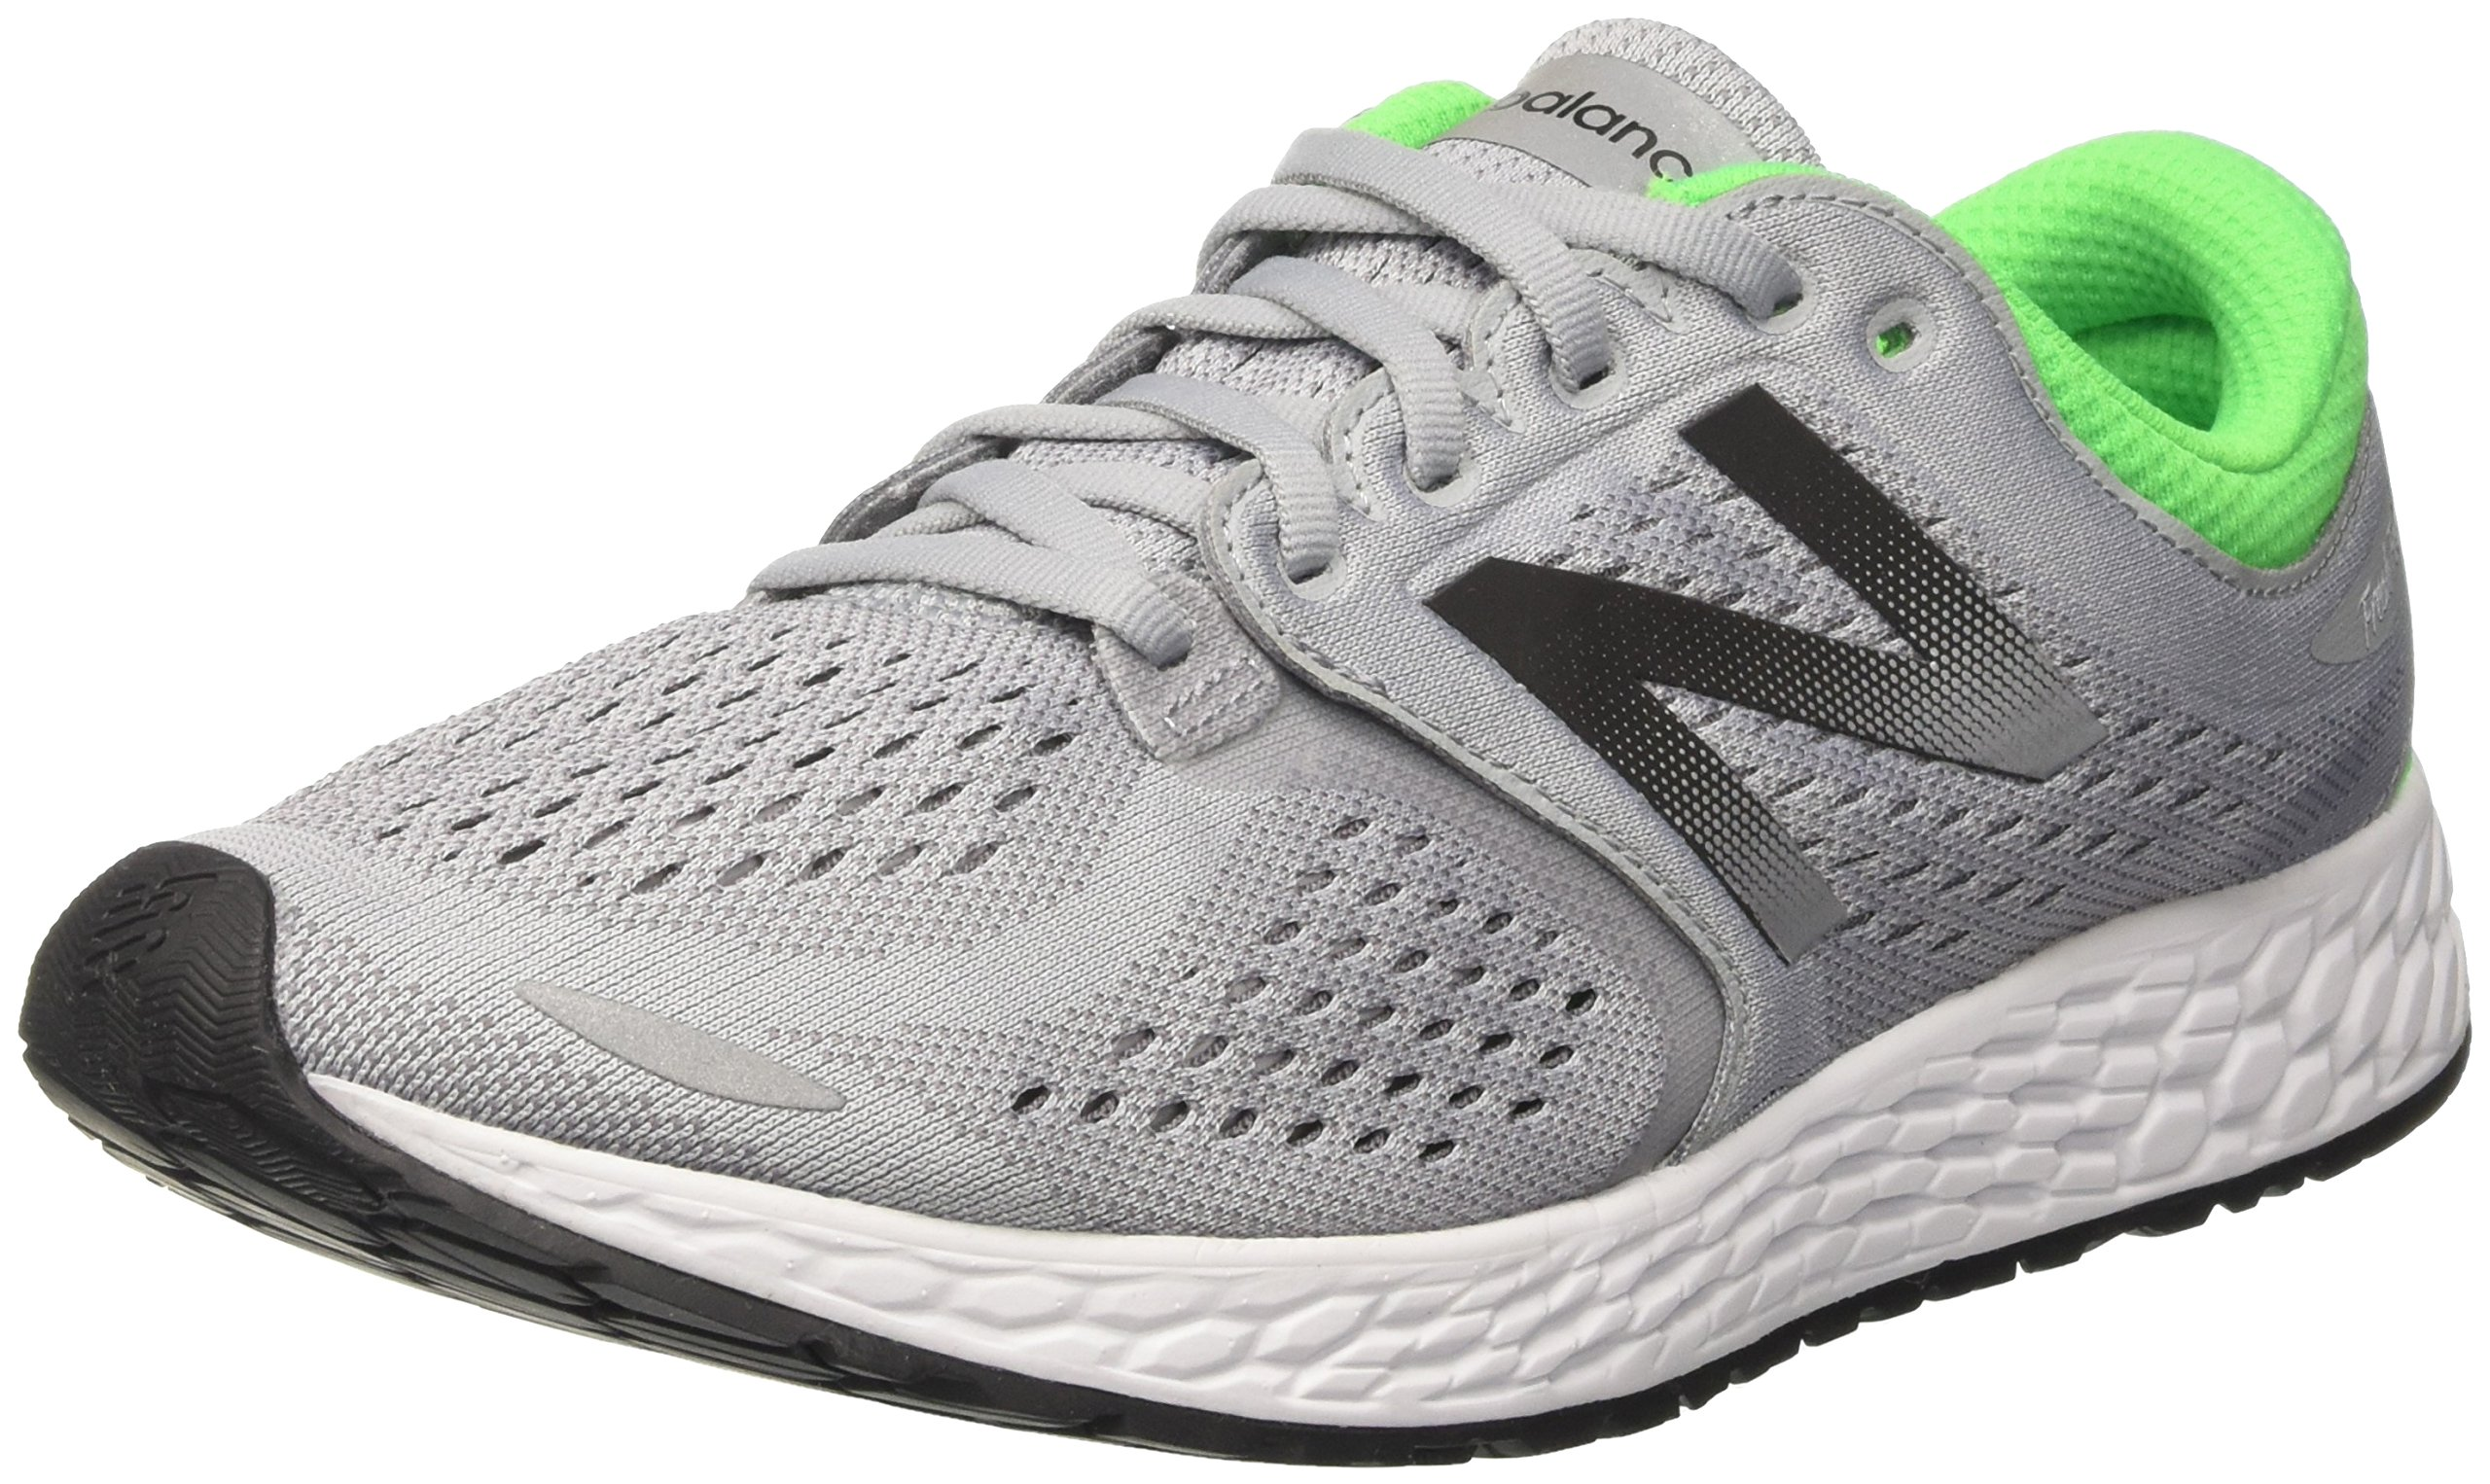 45c99f3b697e5 New Balance Men's Fresh Foam Zante v3 Running Shoe - Amazon Mỹ | Fado.vn